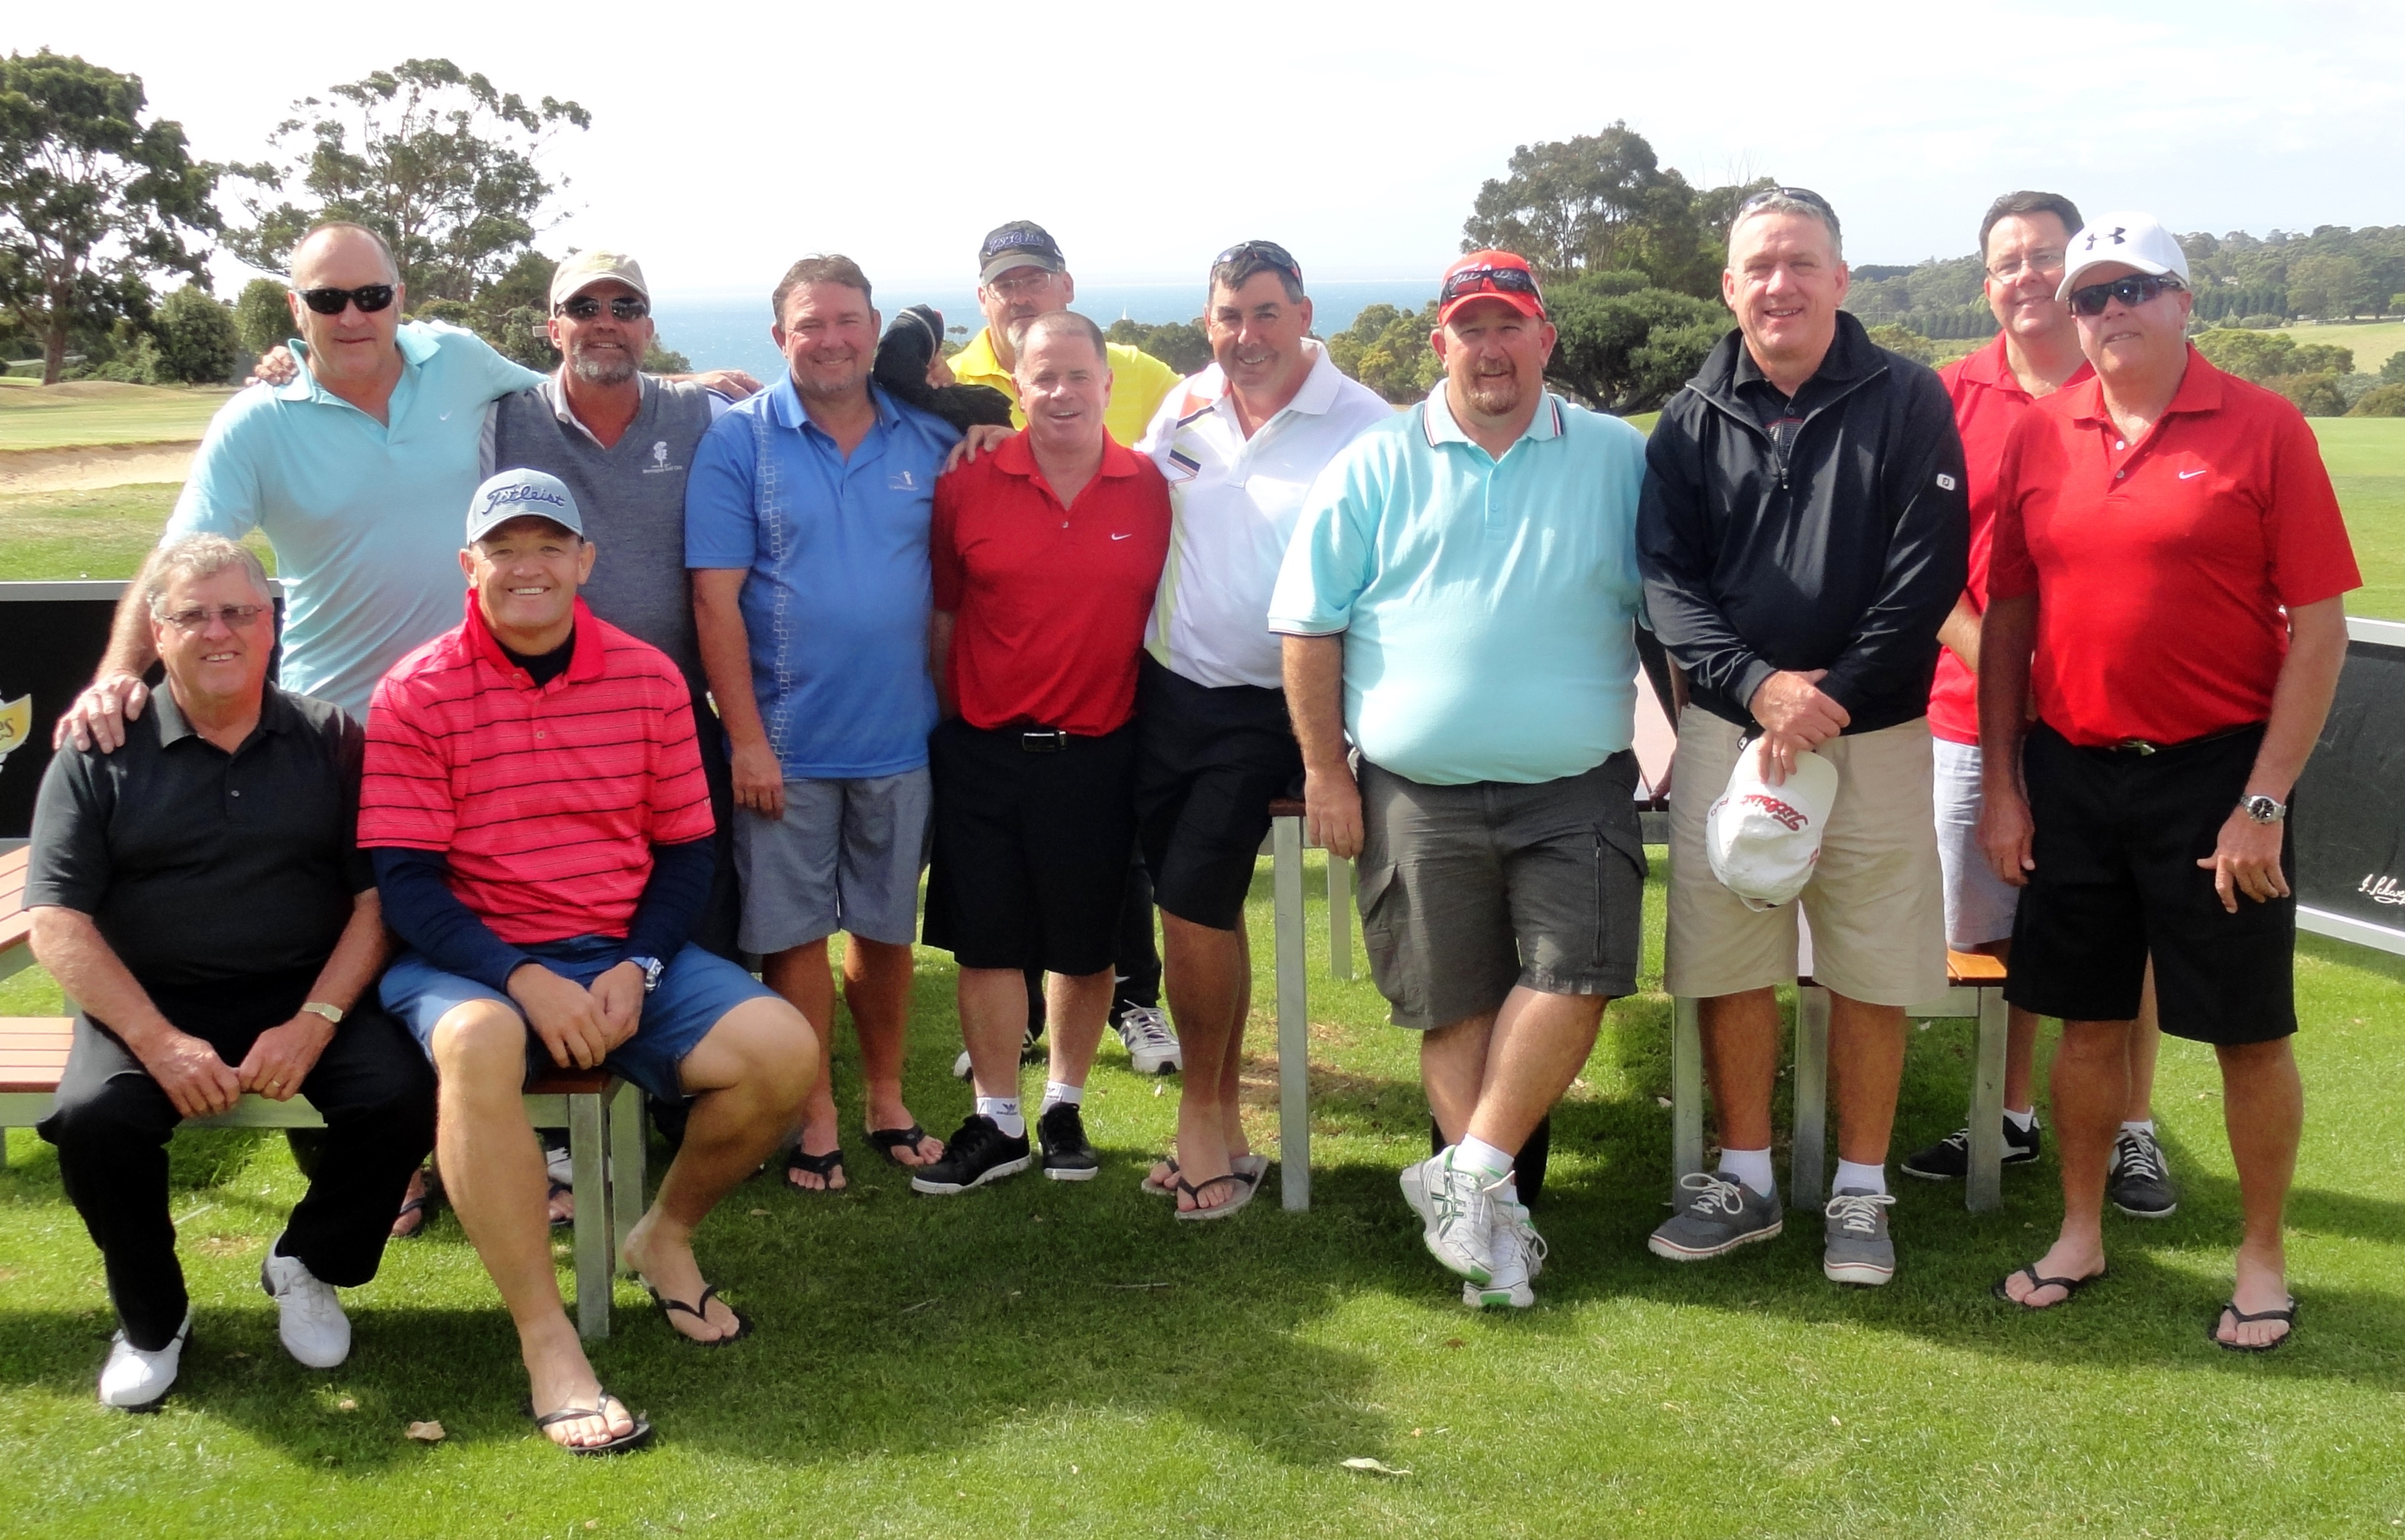 Great Golf Getaways – Bluey Landon Cup Group (Mornington GC)